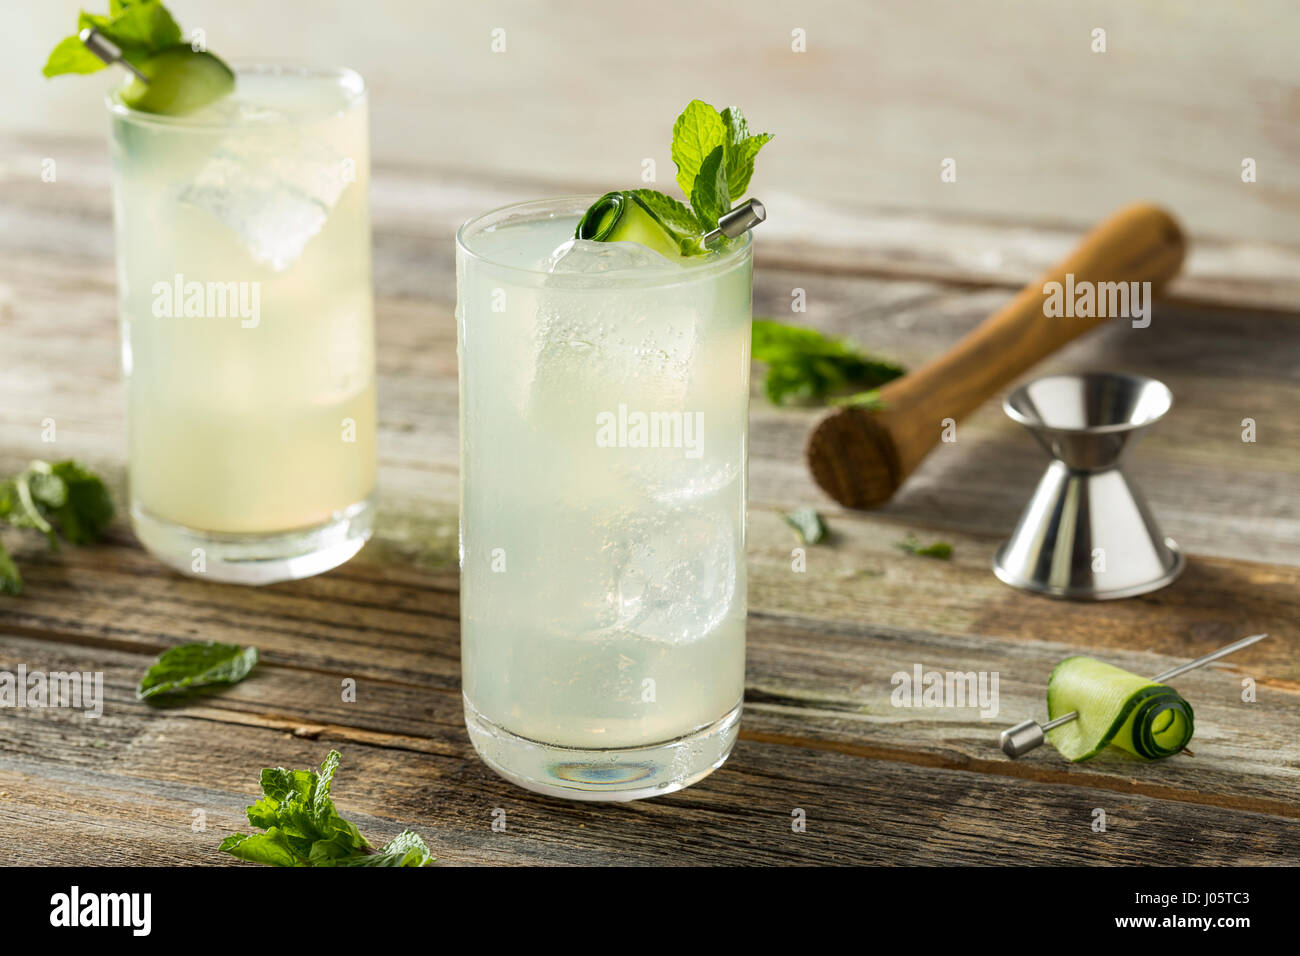 Refreshing Cucumber Gin Spritz Cocktail with Lime and Mint - Stock Image